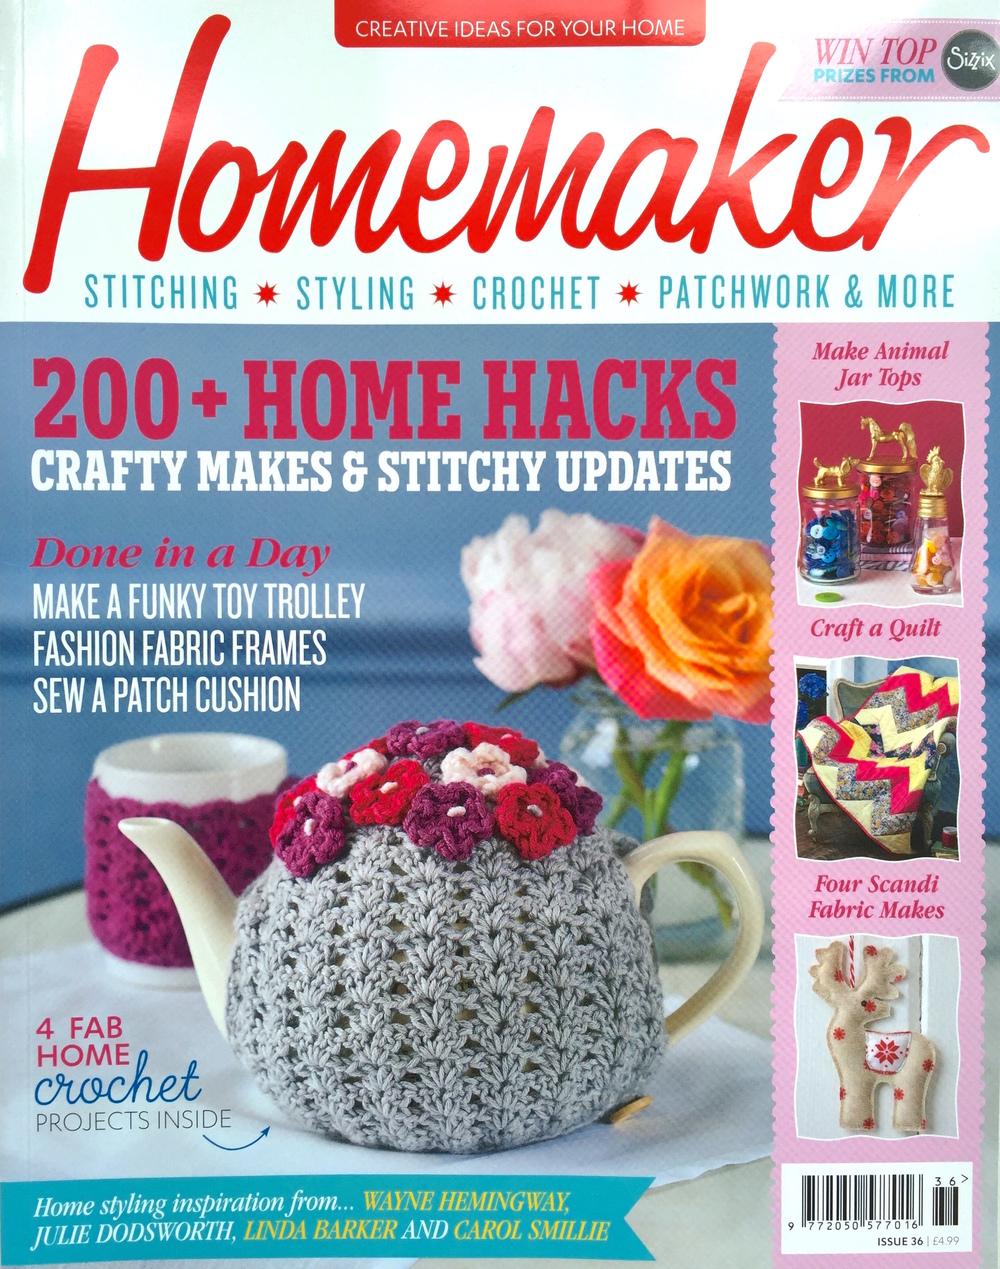 September 2015 - Homemaker Magazine. Issue 36. Featured as Website of the Month.